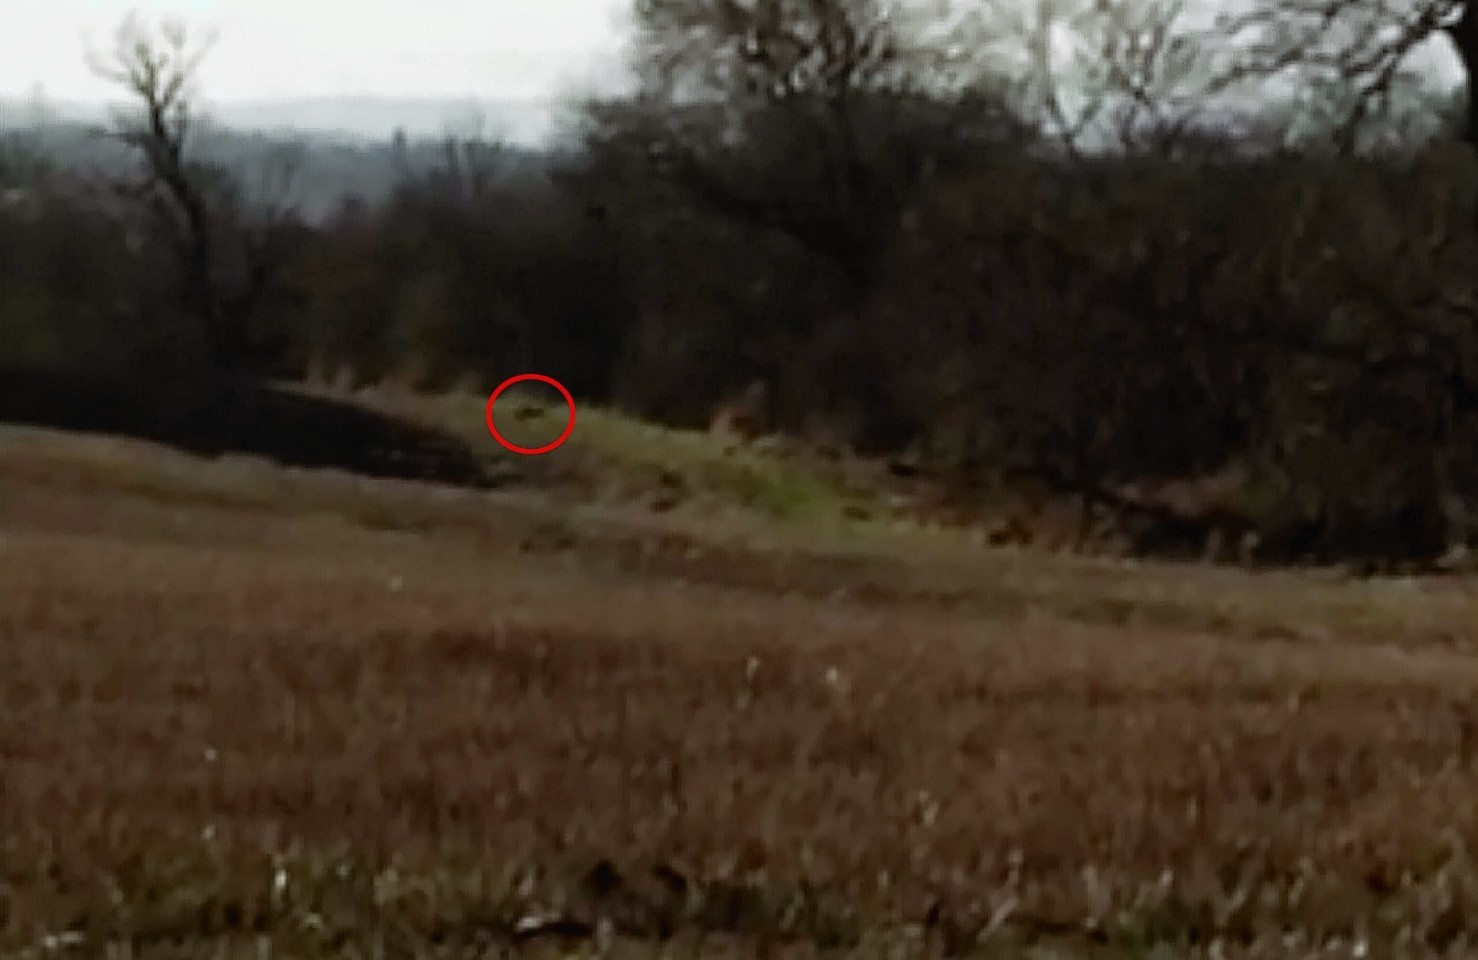 A large black cat was spotted in a field on the outskirts of East Lothian